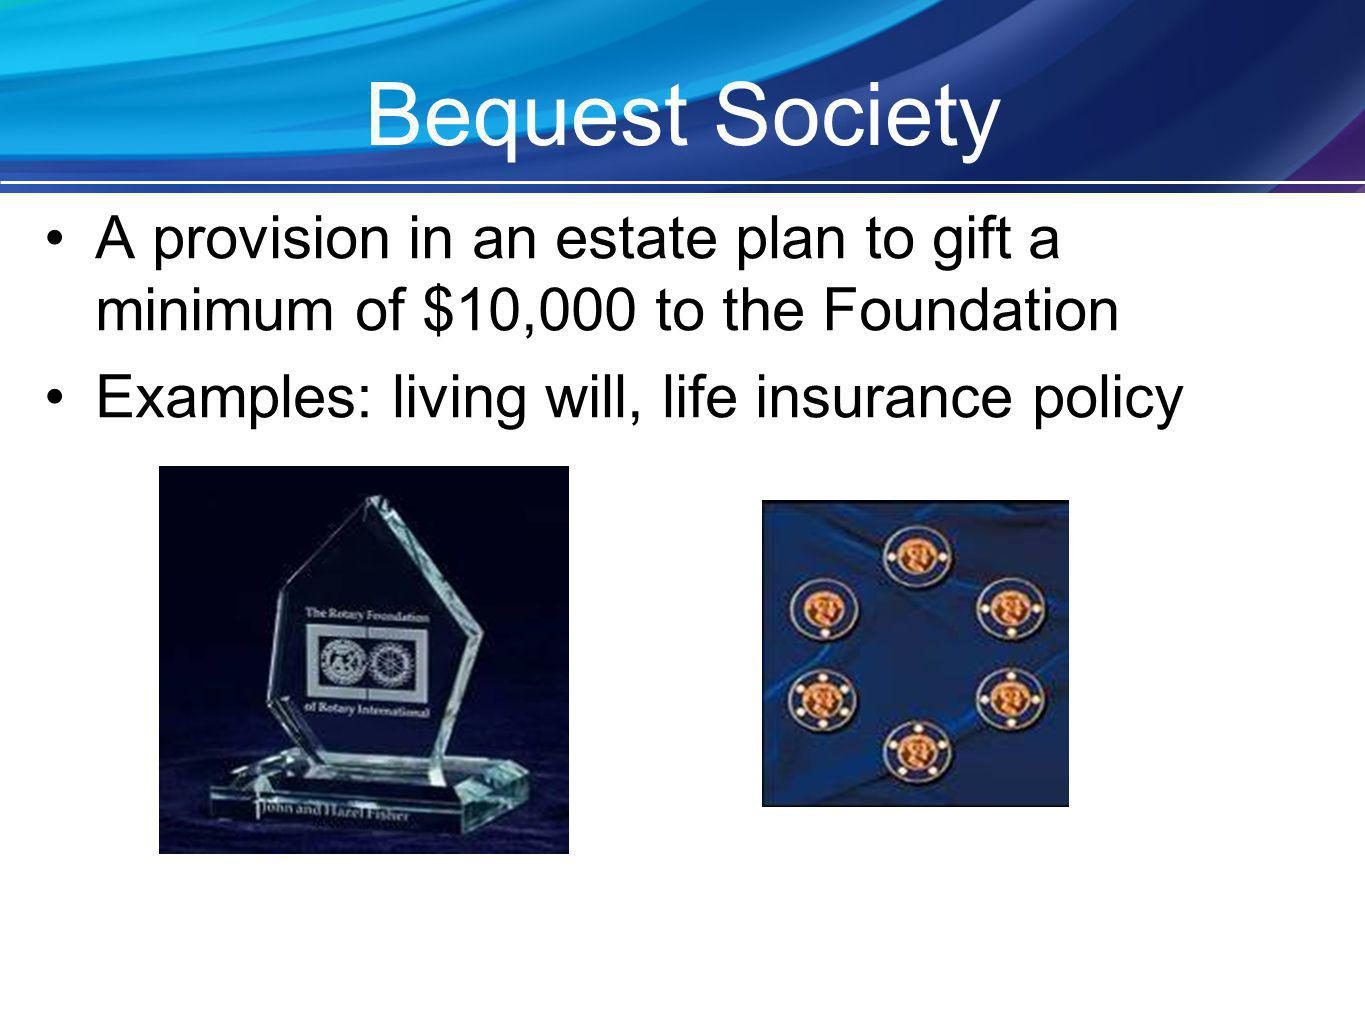 Bequest Society A provision in an estate plan to gift a minimum of $10,000 to the Foundation Examples: living will, life insurance policy